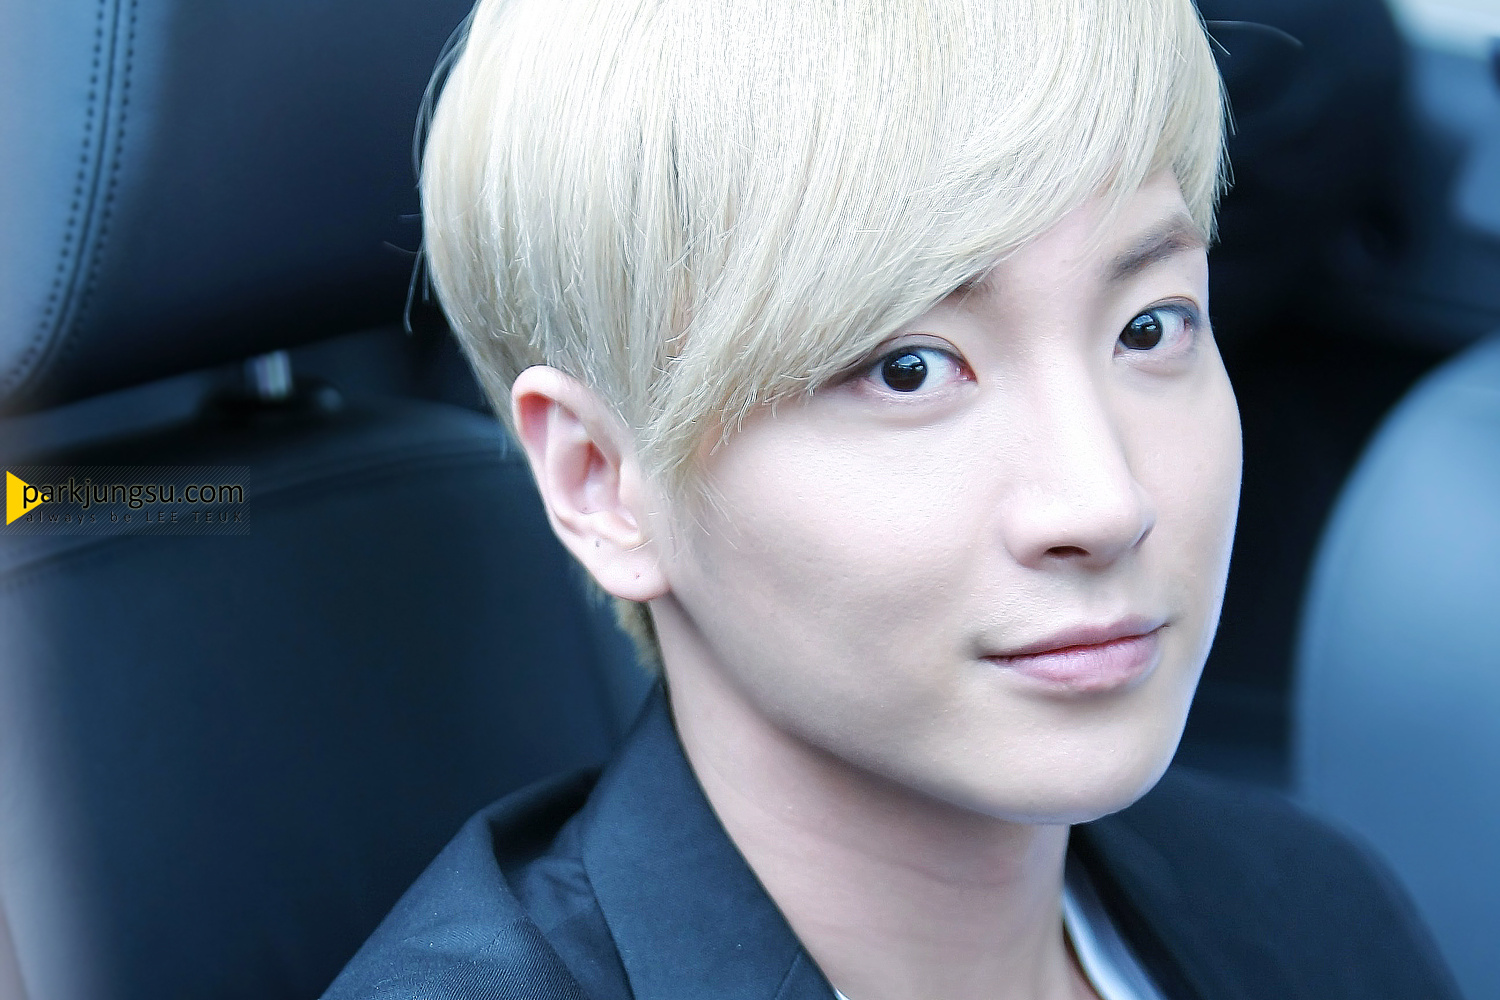 SIA Will Be Super Junior's Leeteuk's Last Official Activity before Enlistment